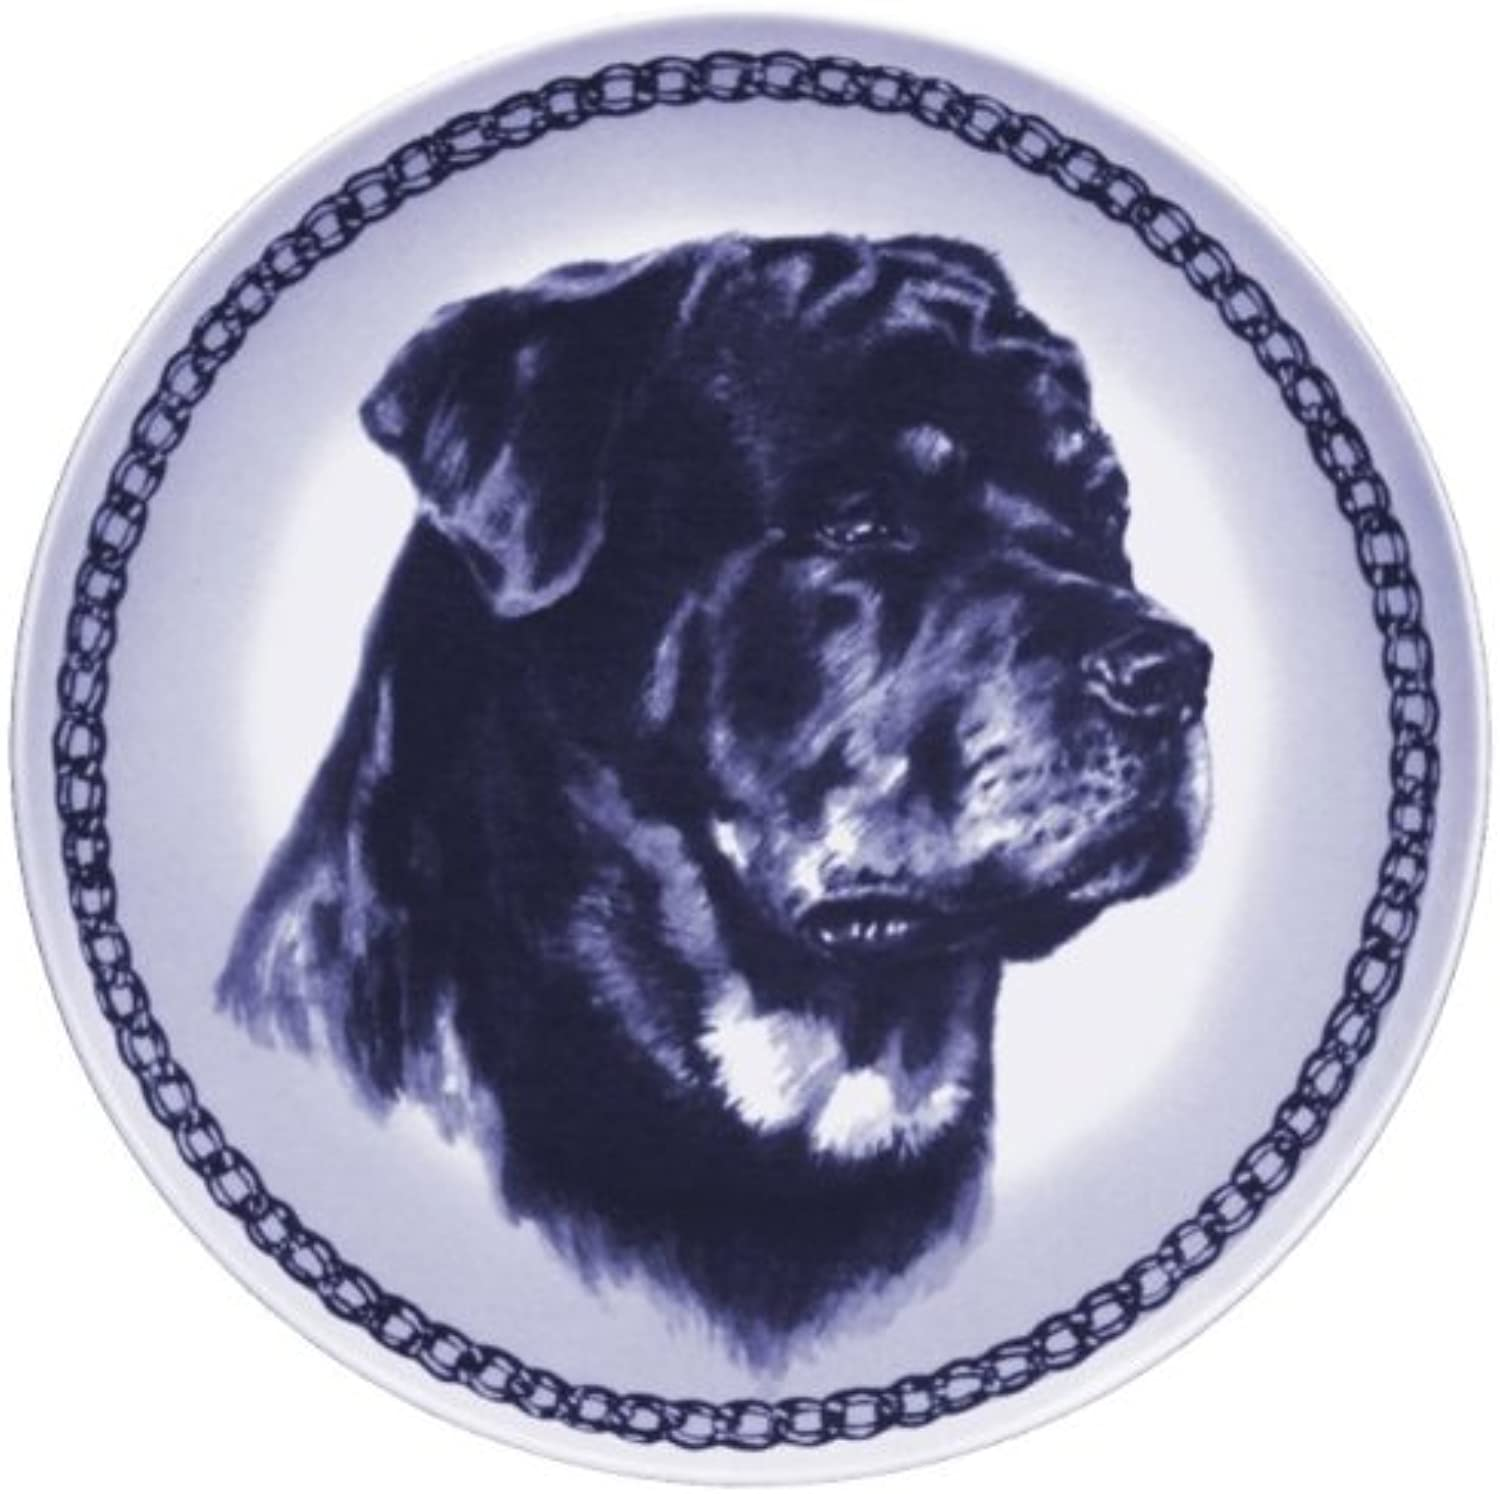 redtweiler Lekven Design Dog Plate 19.5 cm  7.61 inches Made in Denmark NEW with certificate of origin PLATE  7513